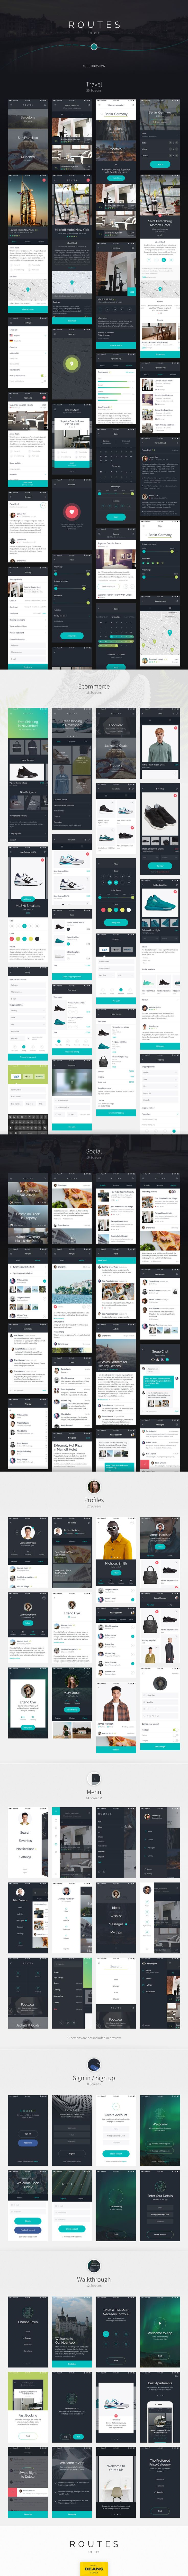 Routes iOS UI Kit by Beans UI Goods on @creativemarket